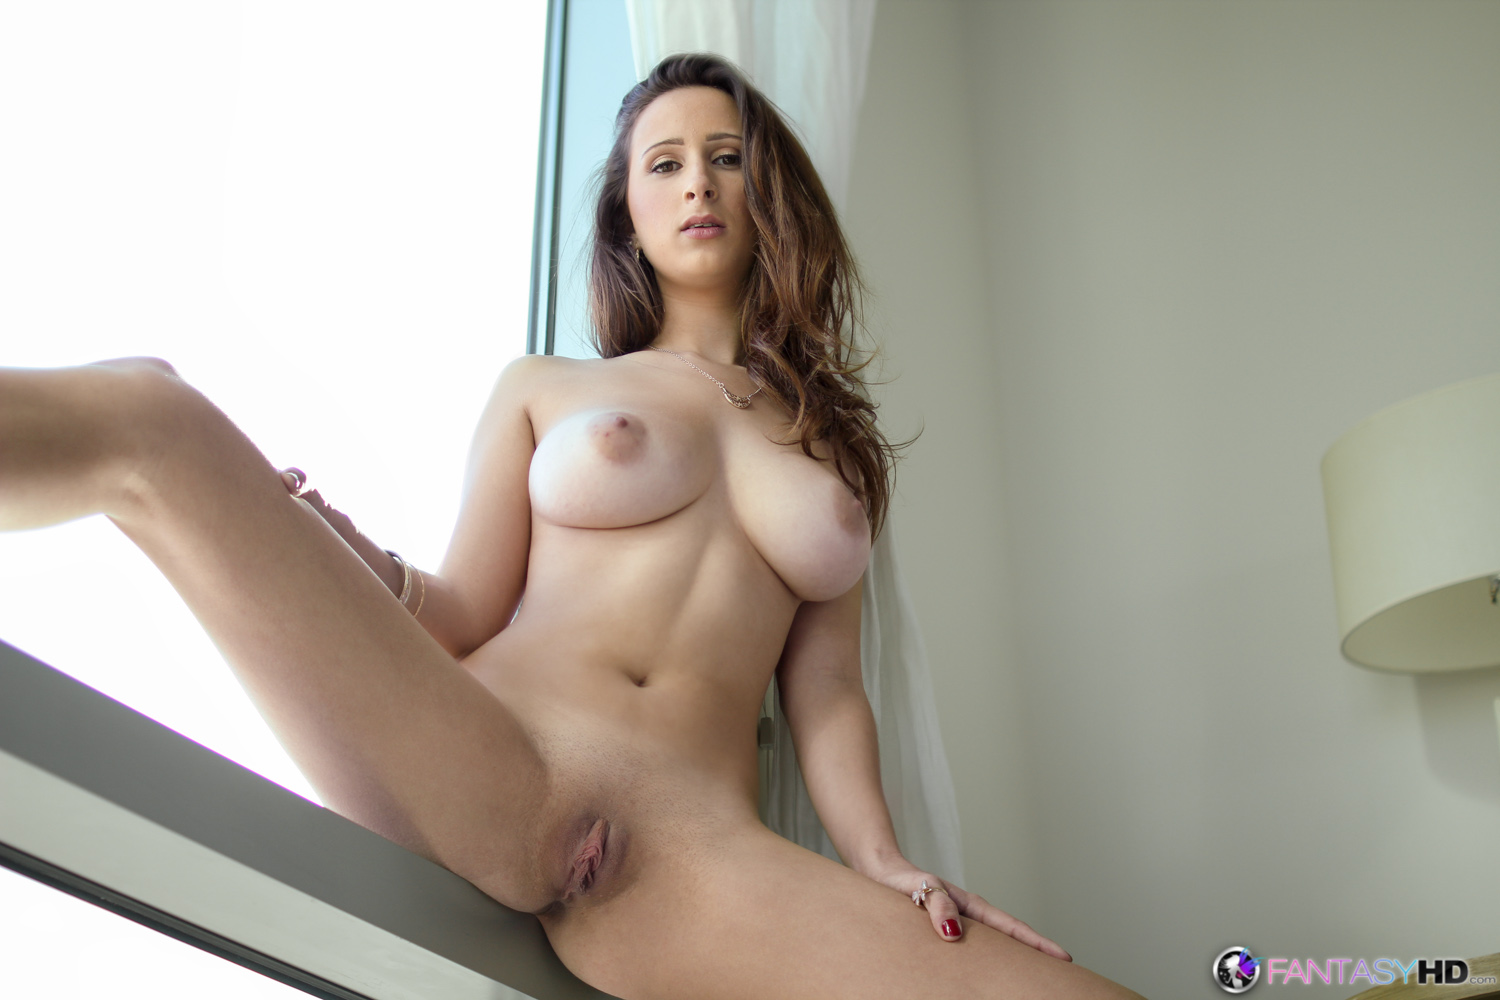 Alexis bliss nudes